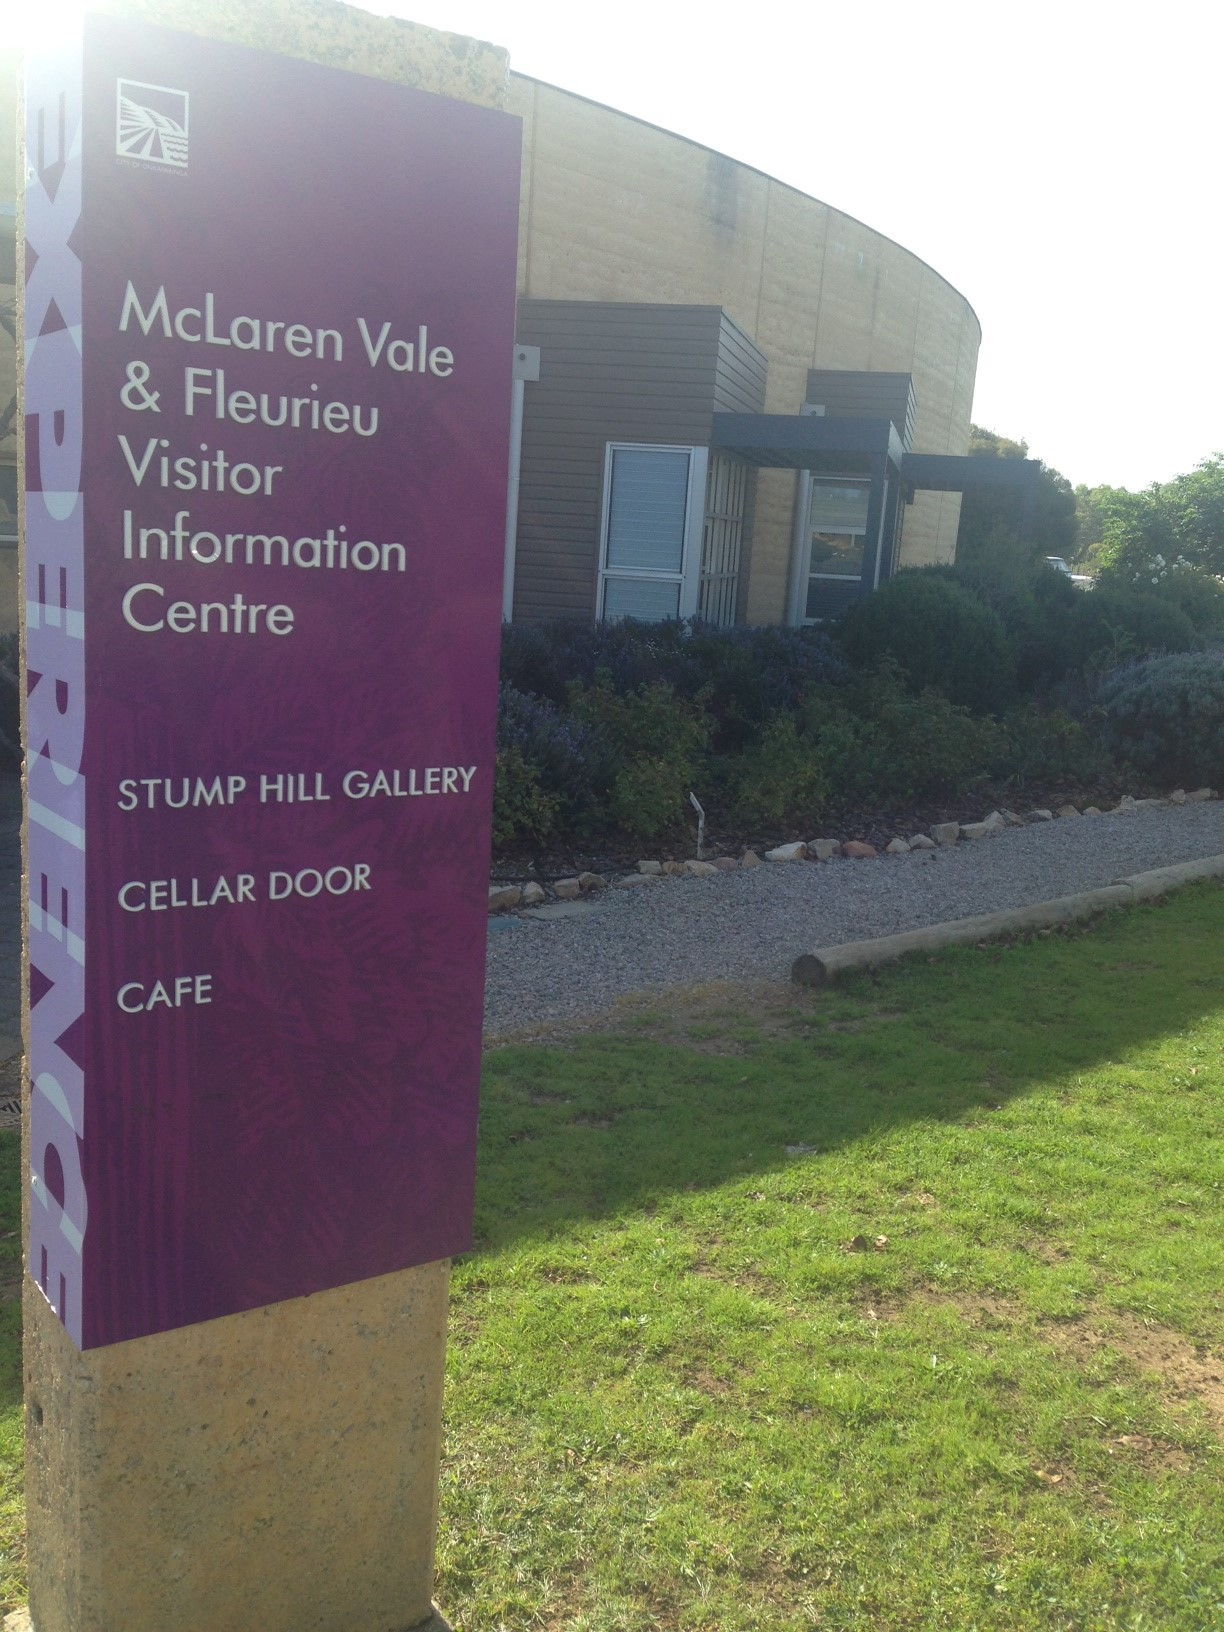 McLaren Vale Visitor Centre  Adelaide  by The wanderer